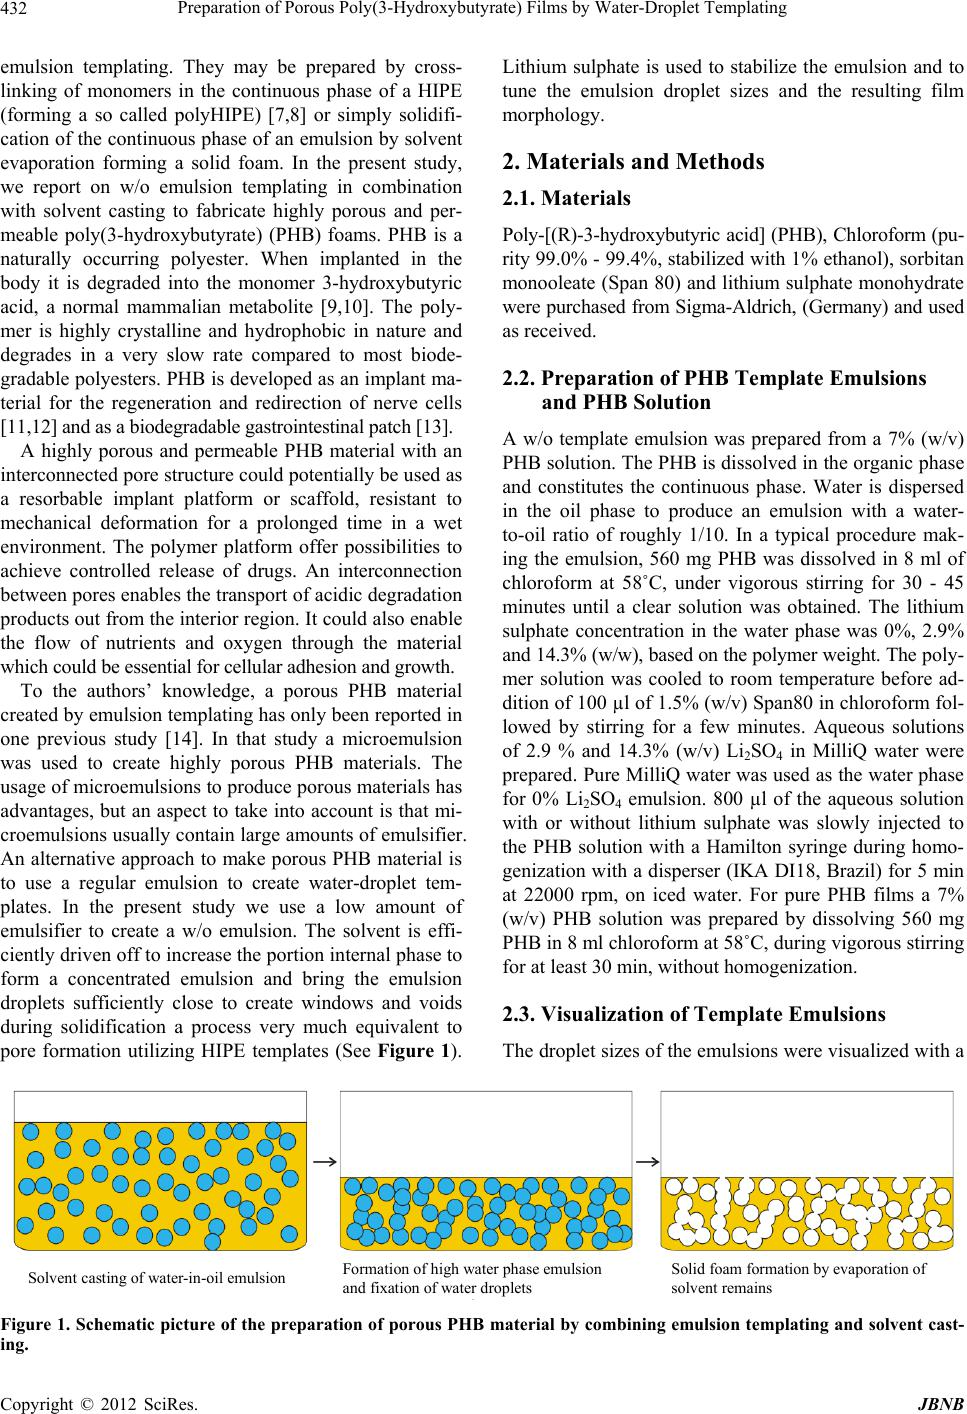 Preparation of Porous Poly(3-Hydroxybutyrate) Films by Water-Droplet ...